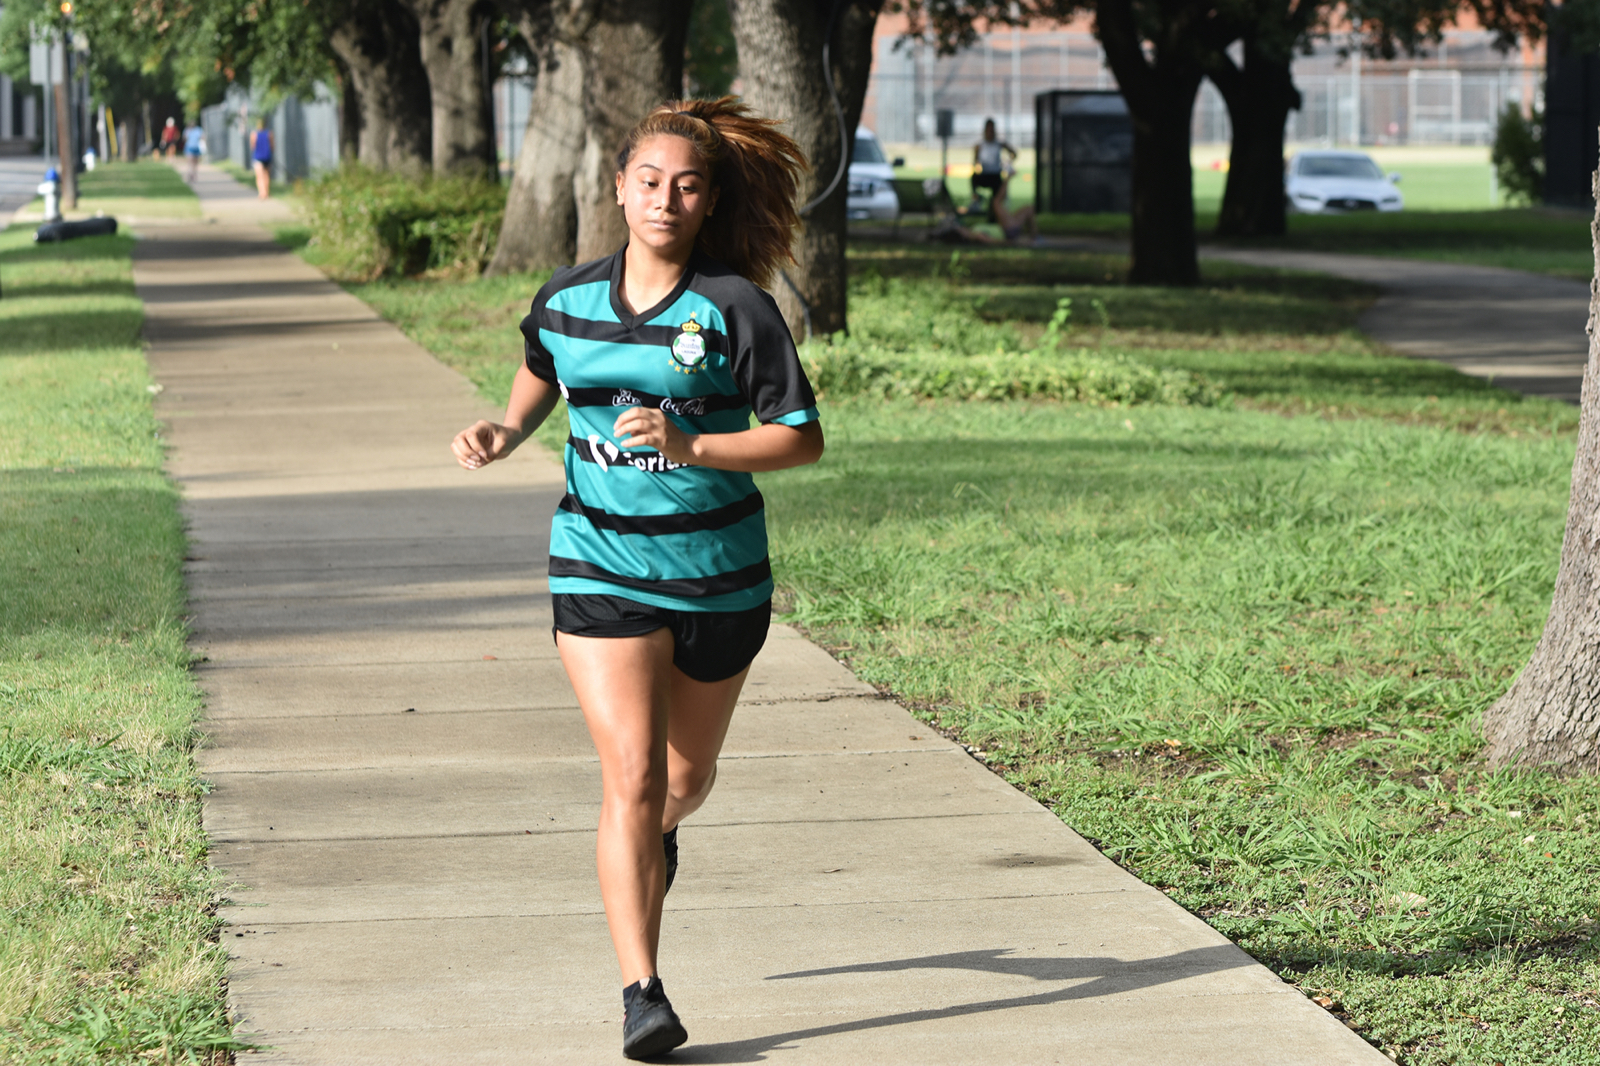 Photo gallery: Cross country summer conditioning – July 16, 2020